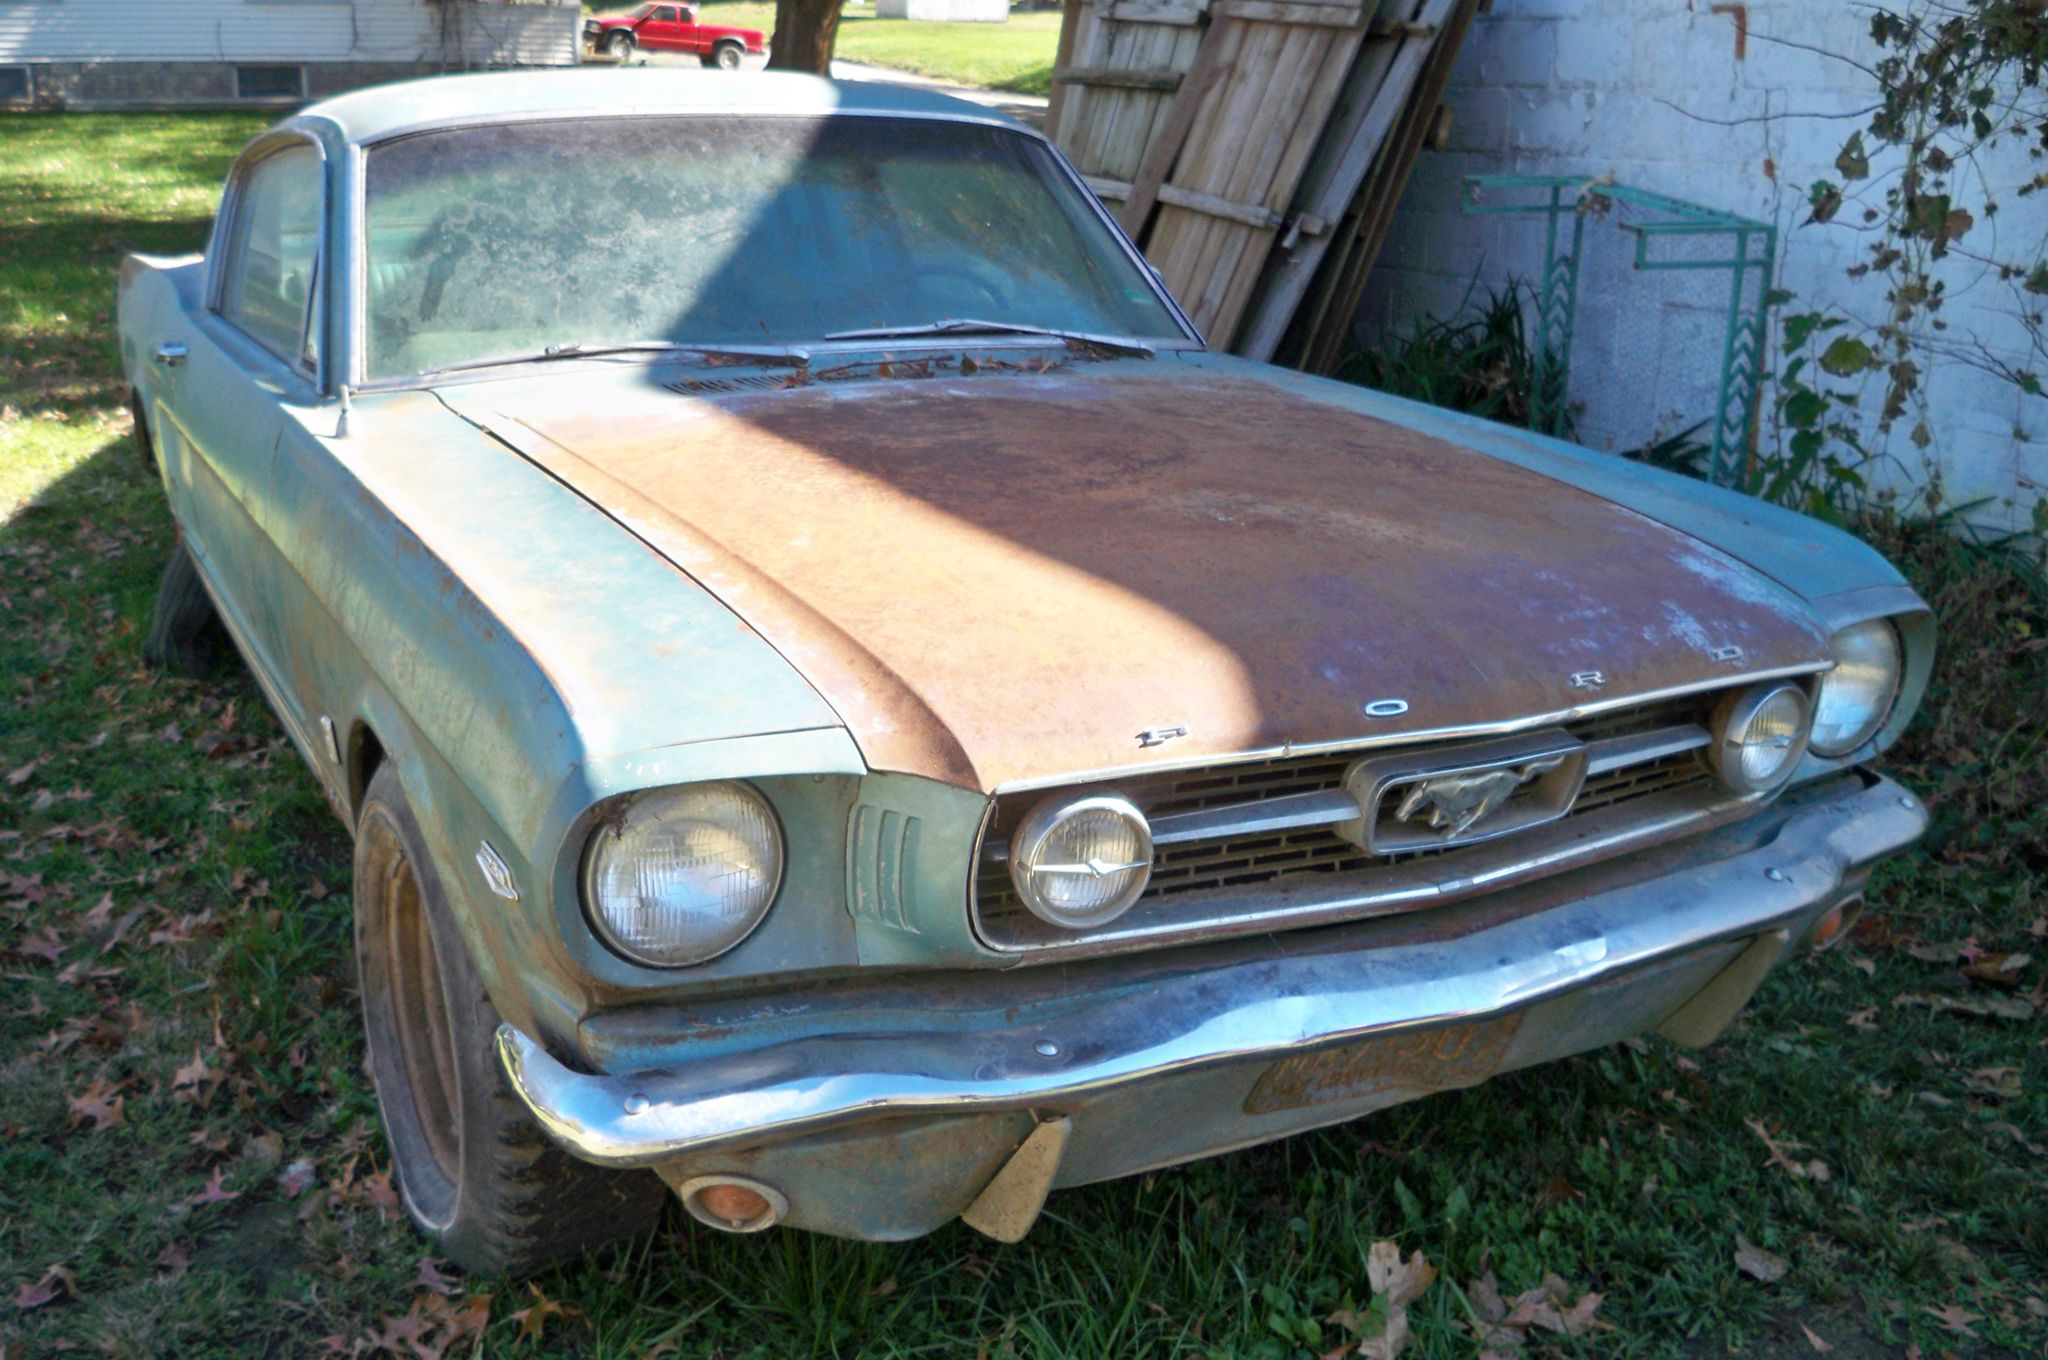 GRANDMA Gave Him A 1966 FORD MUSTANG Hi-Po GT FASTBACK! The RARE BEAST Was HIDDEN In SHED & RESTORATION Is PLANNED!